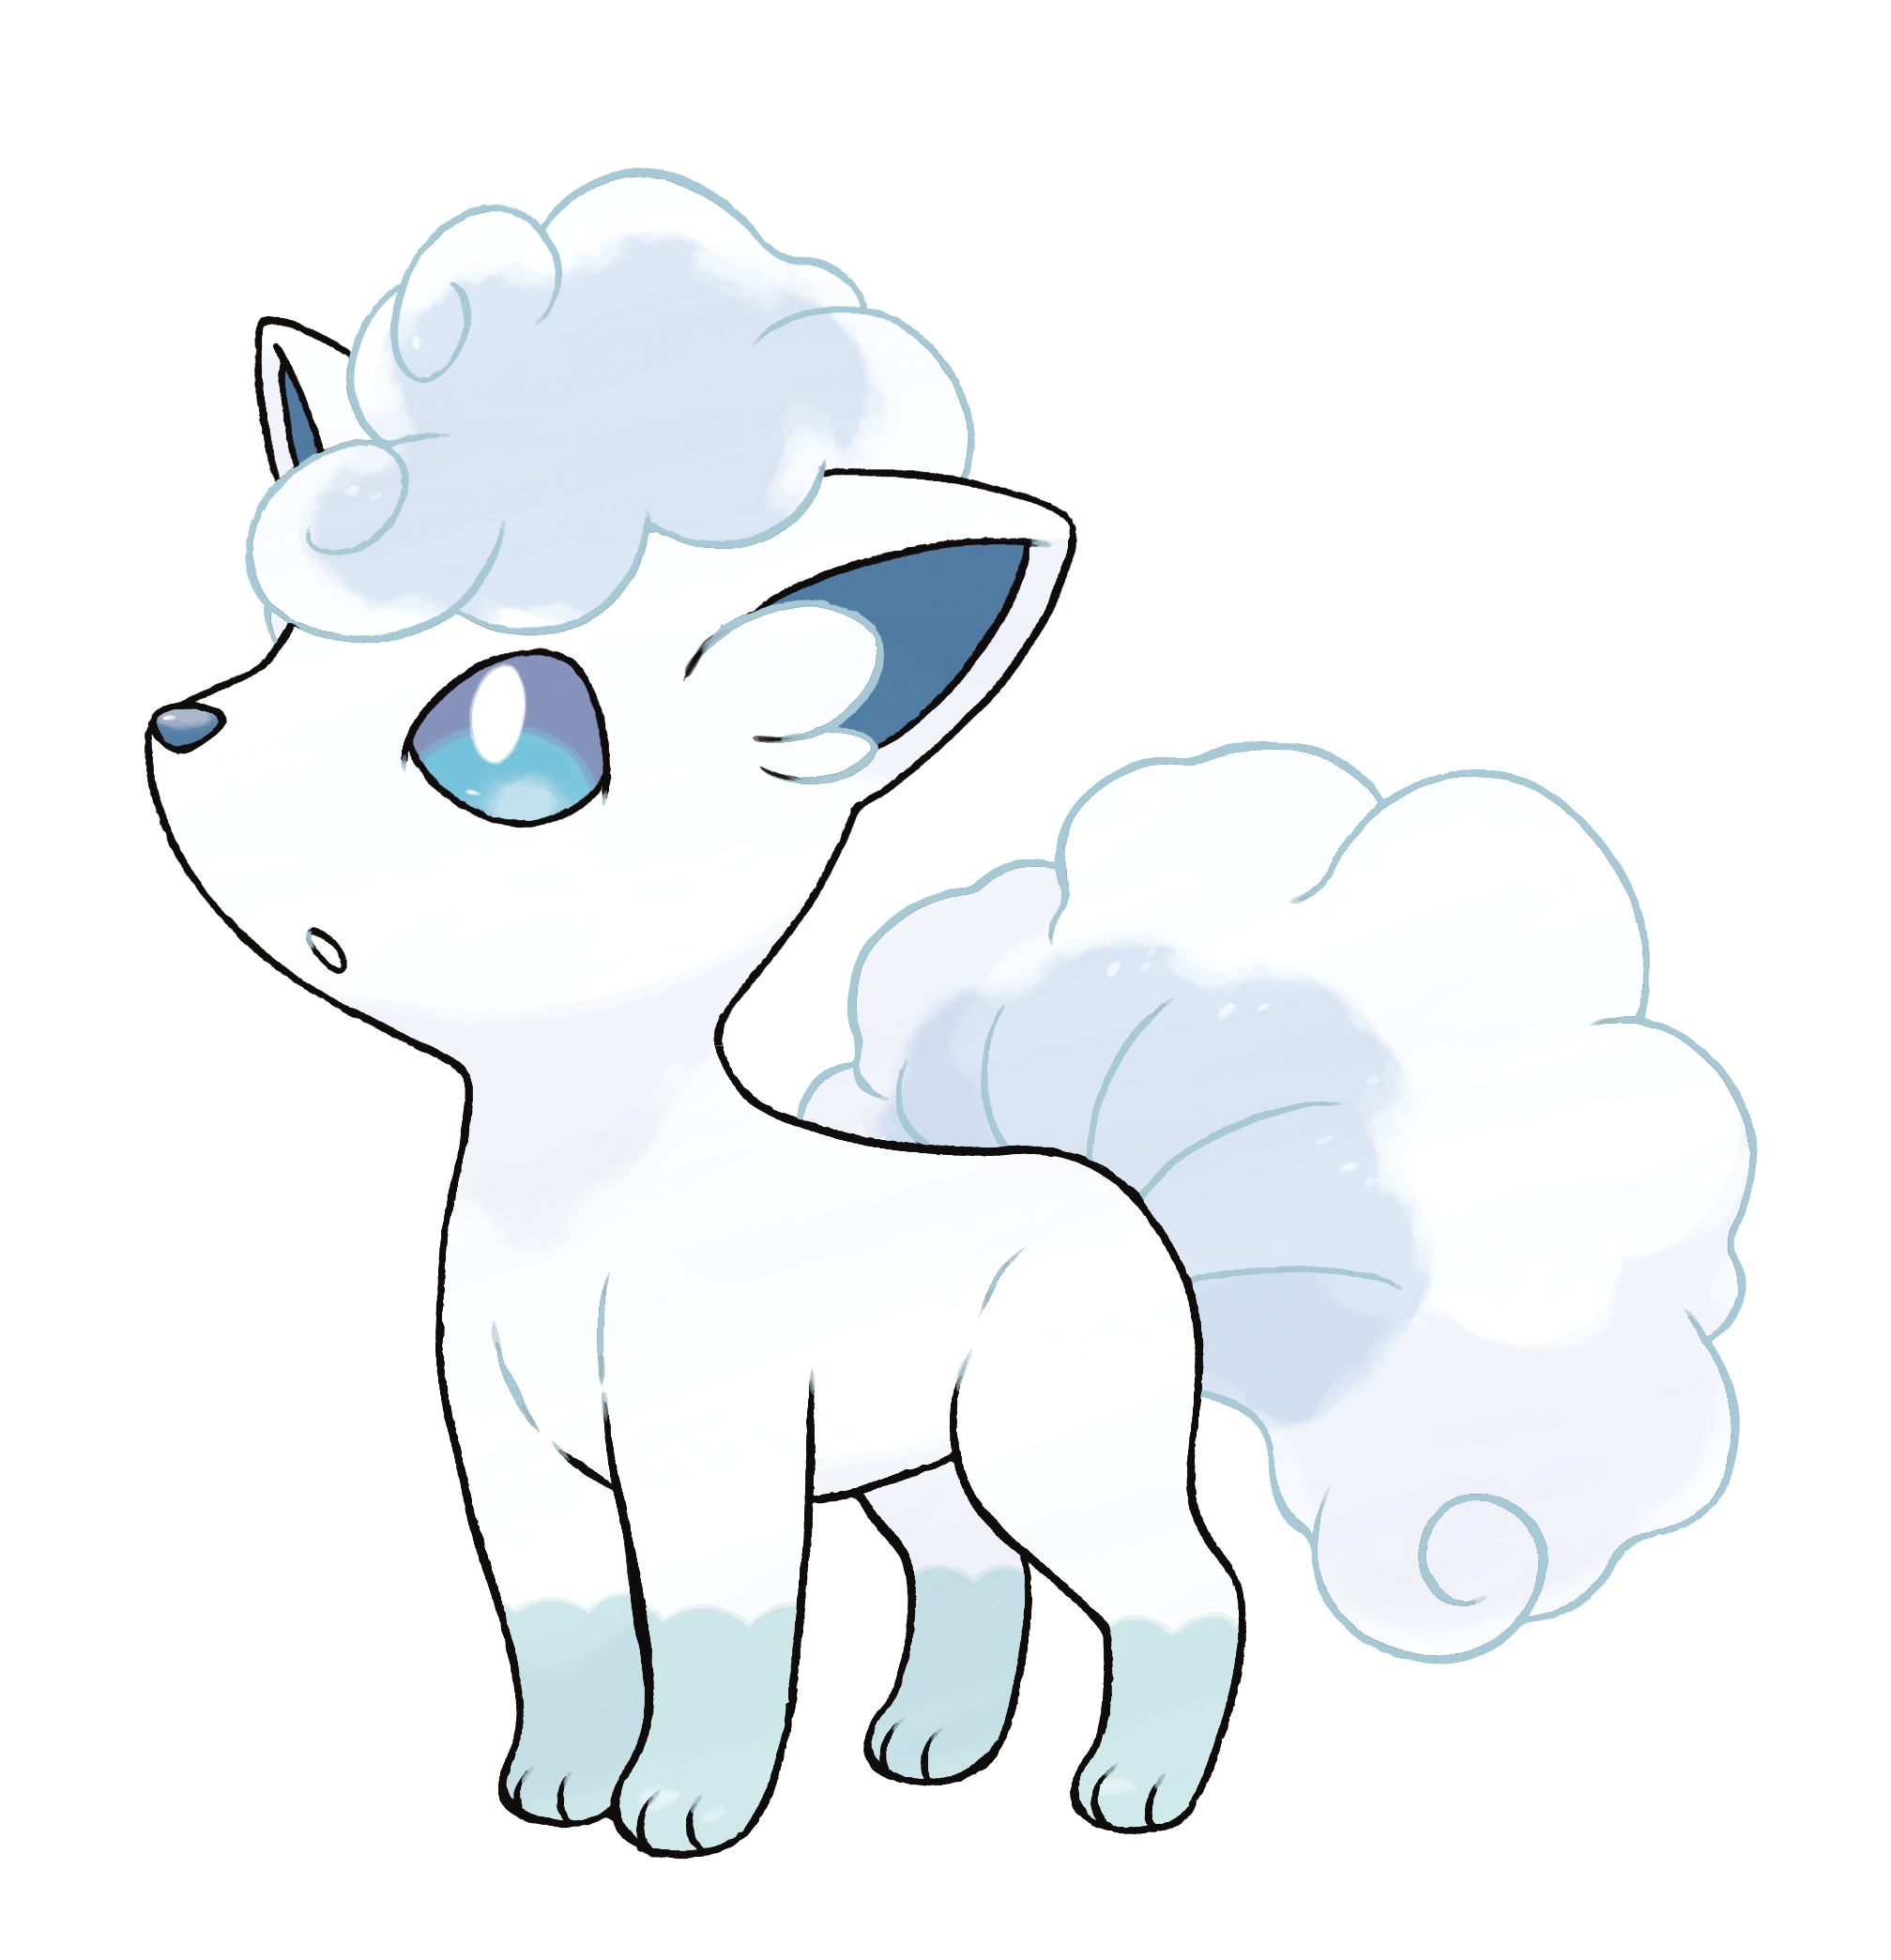 It's possible that generations of natural selection resulted in the all-white Alolian Vulpix.